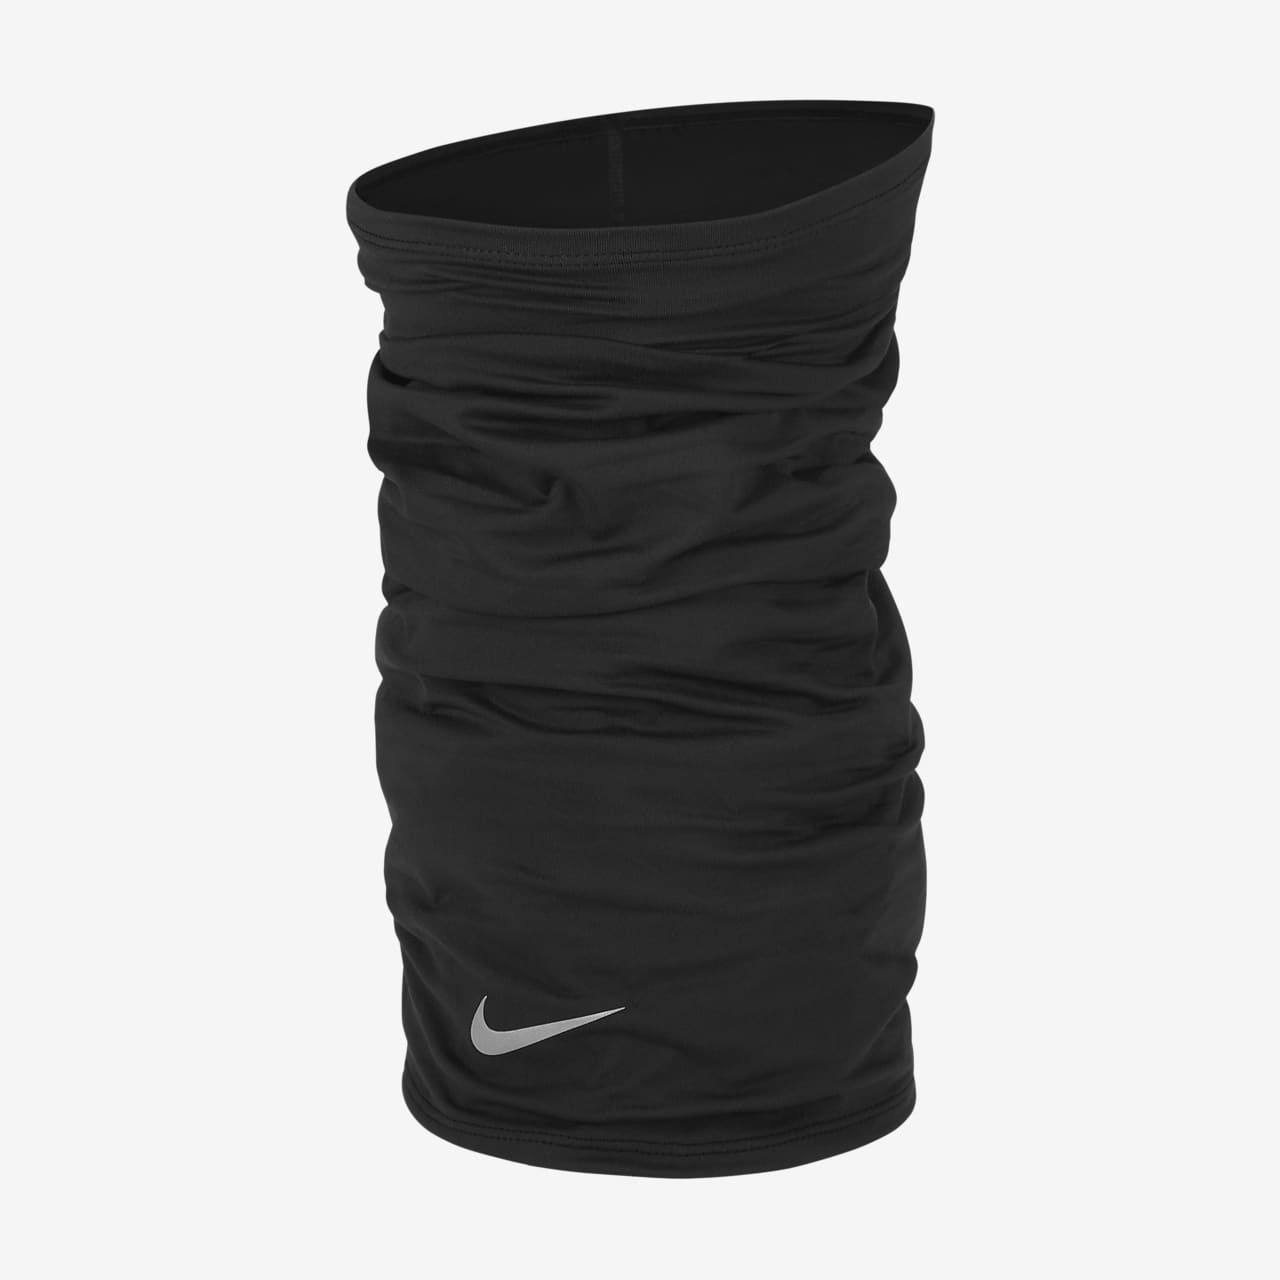 ... Nike Dri-FIT Running Wrap